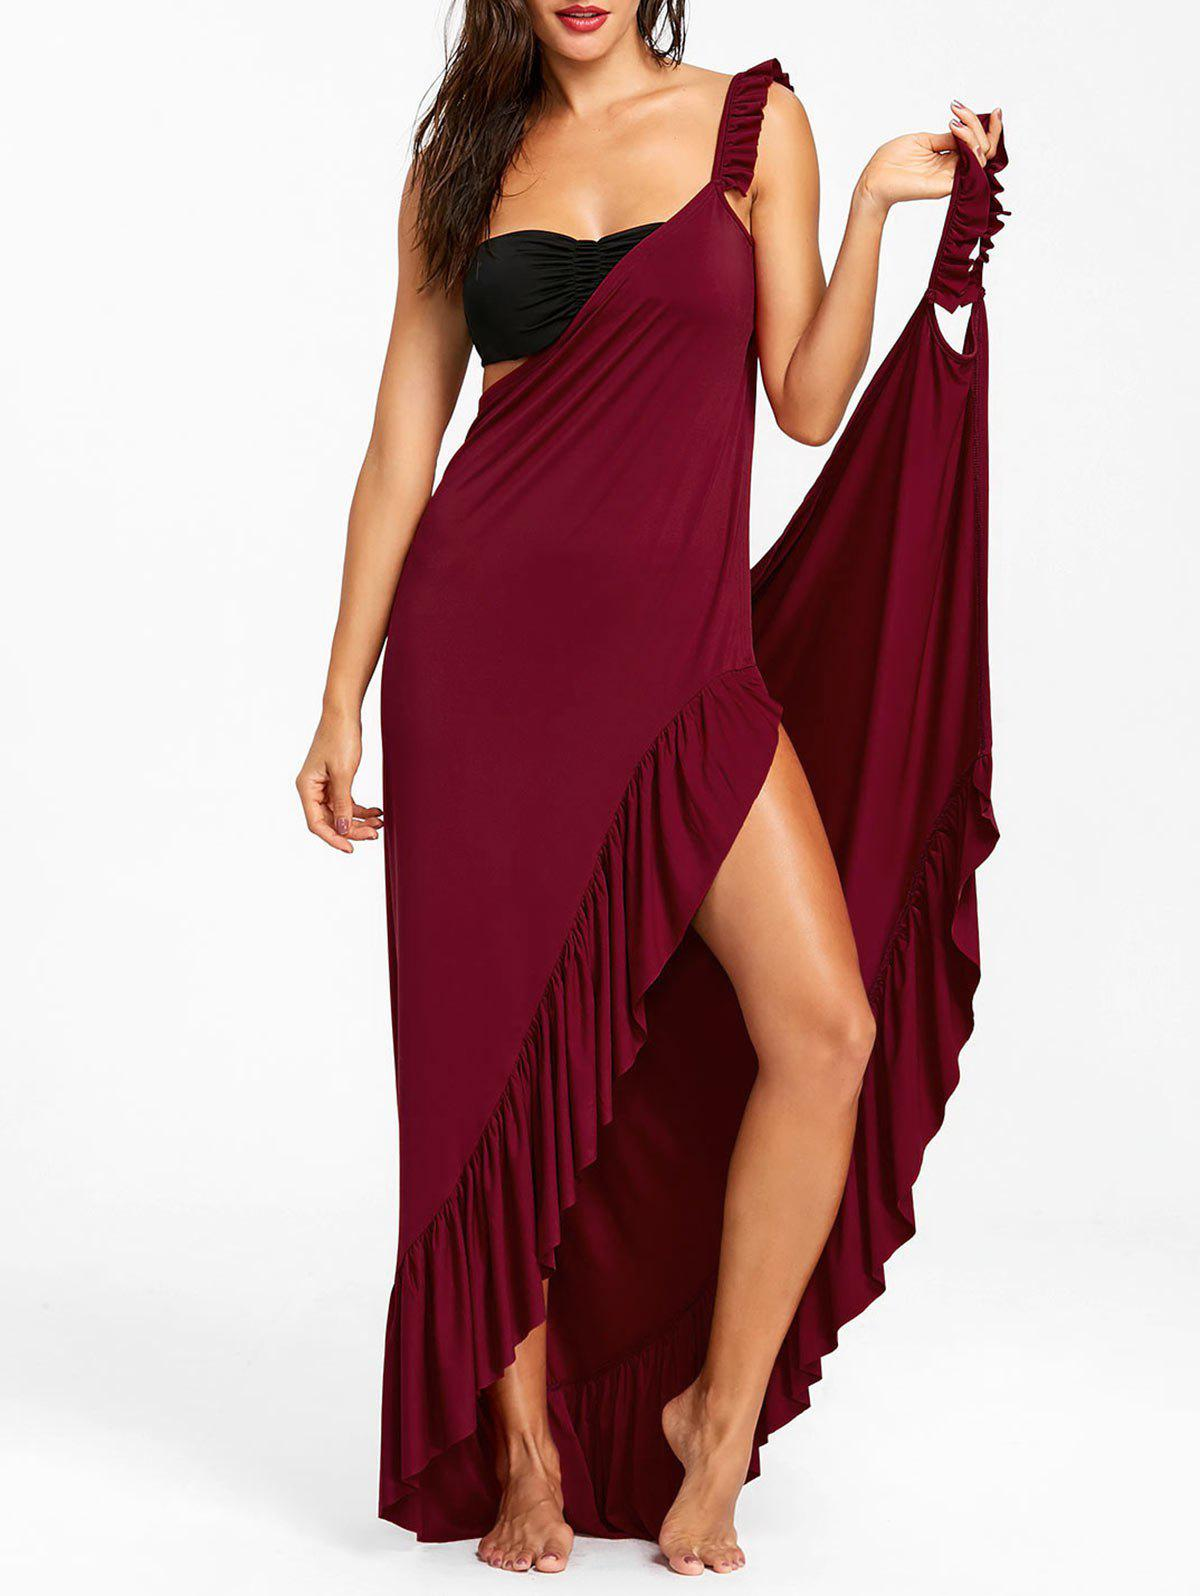 Wrap Flounce Beach Cover Up Dress - RED WINE M